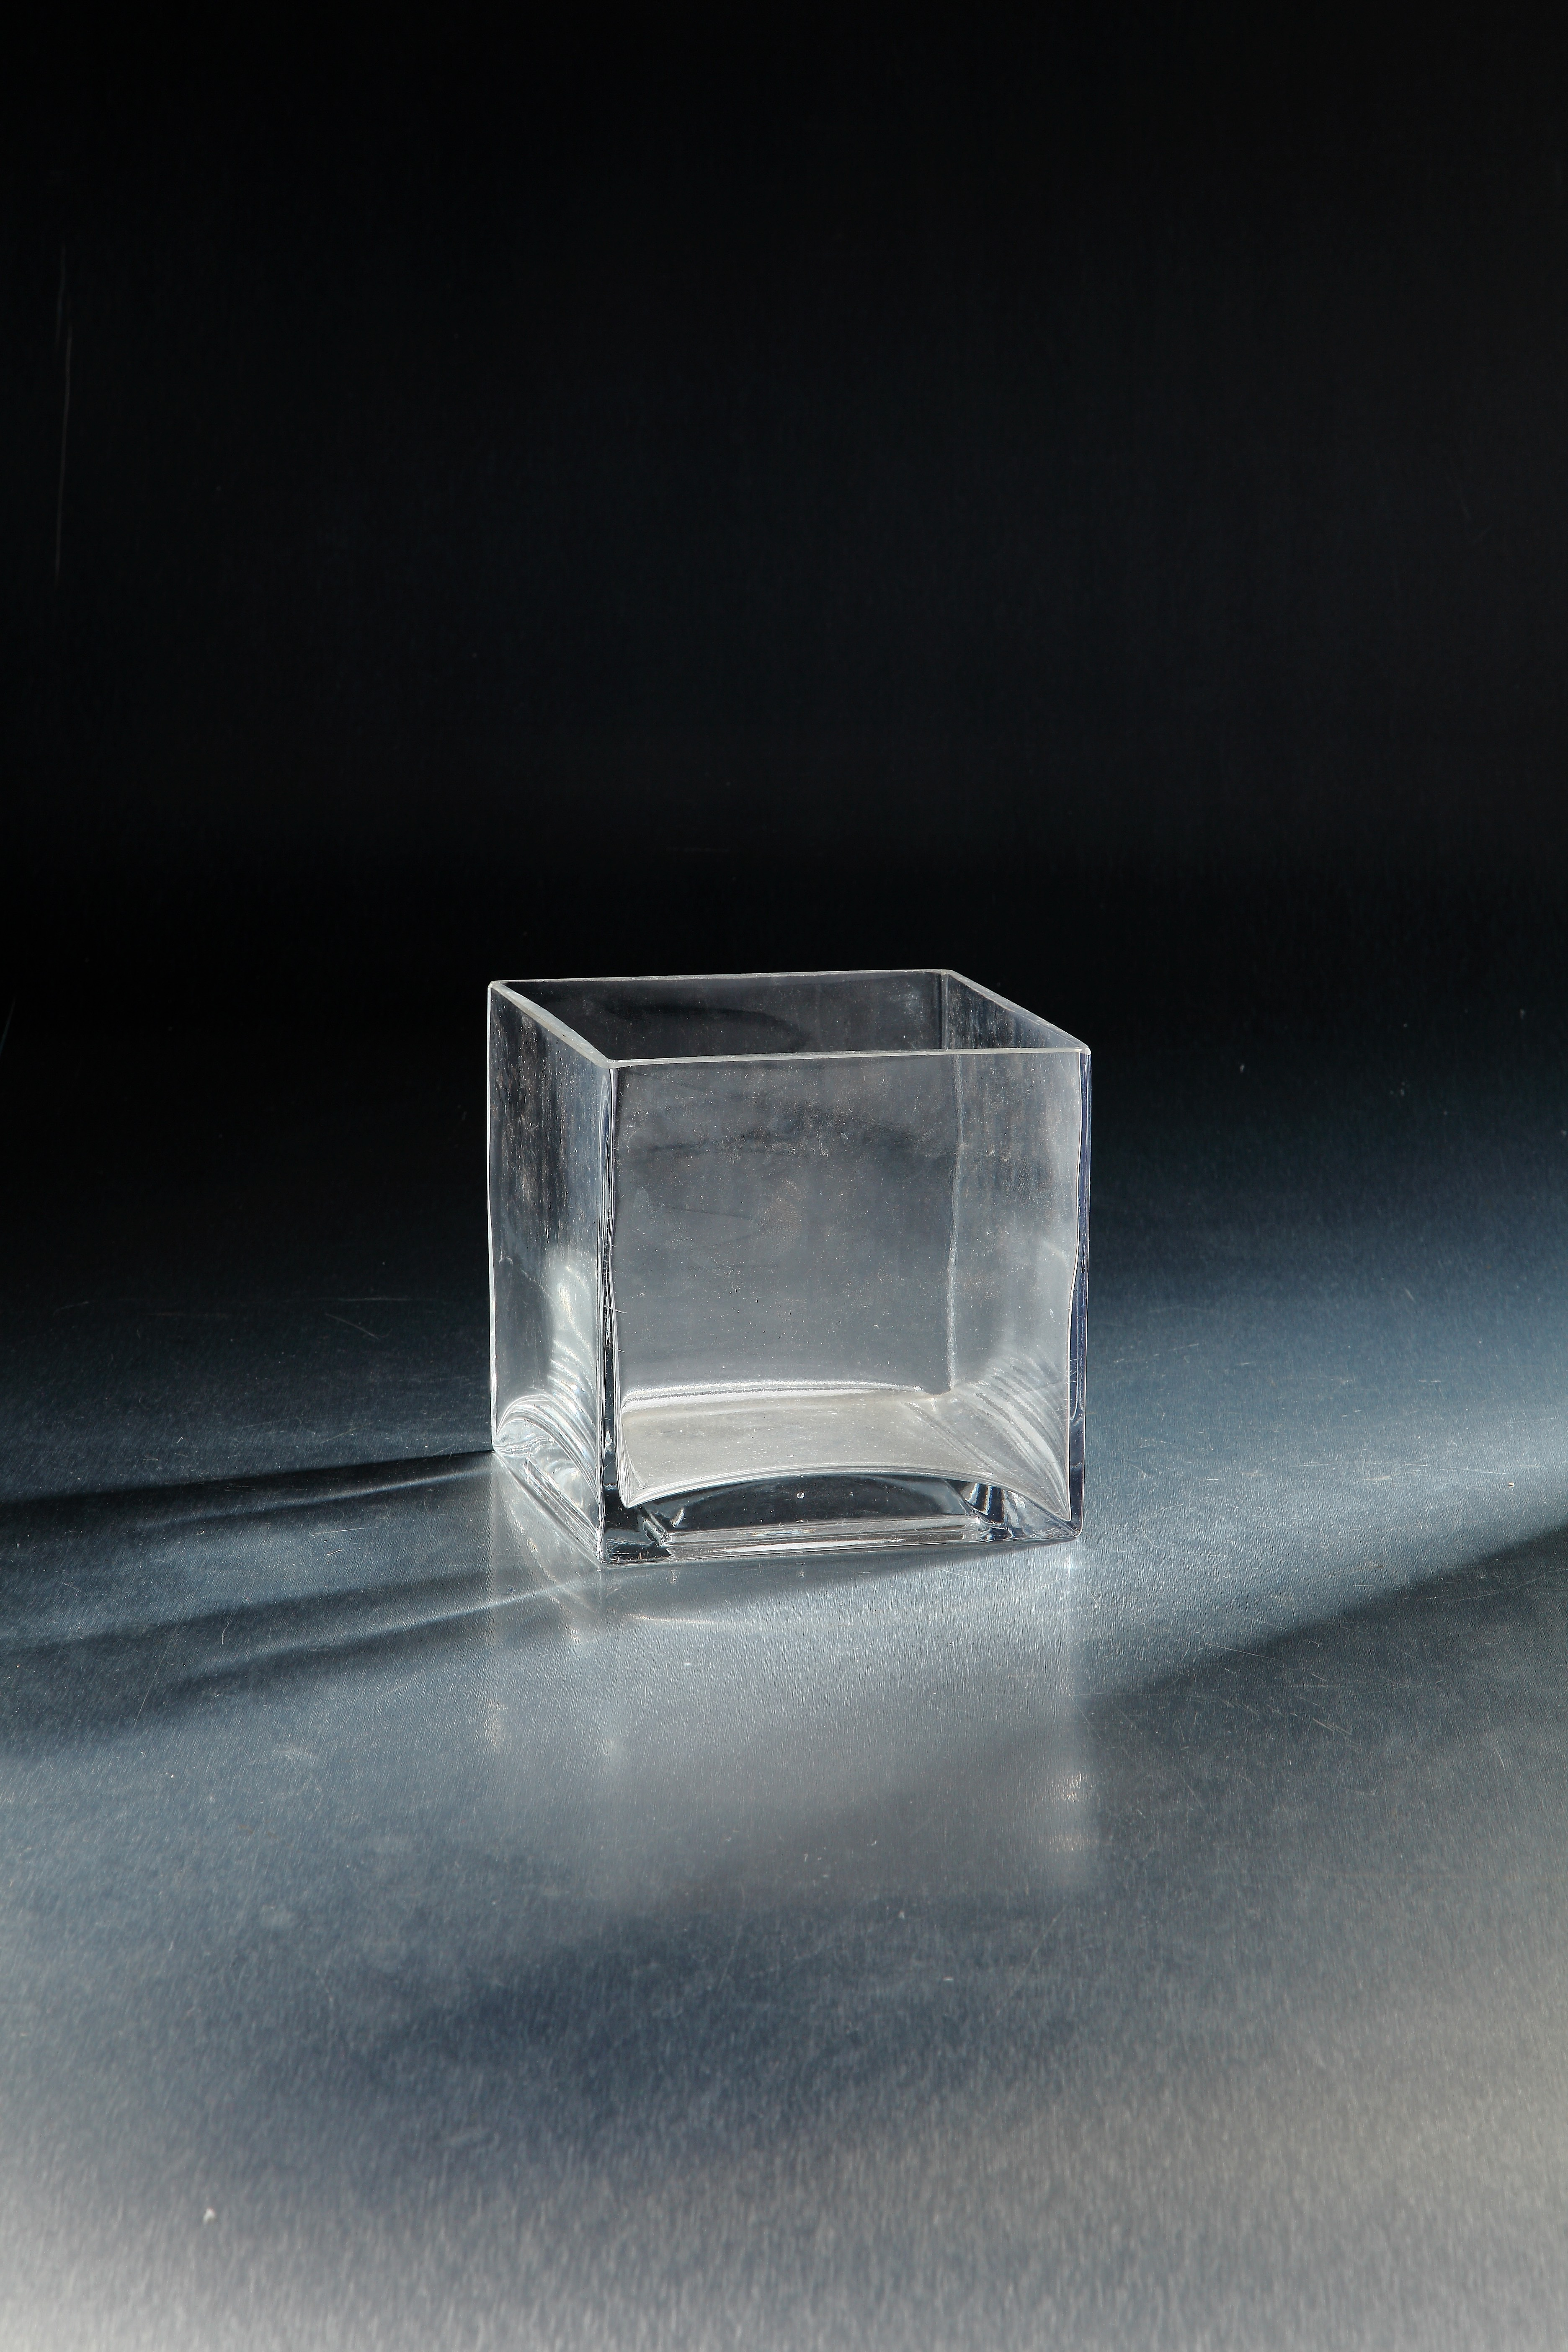 vase large wide extra glass transparent clear